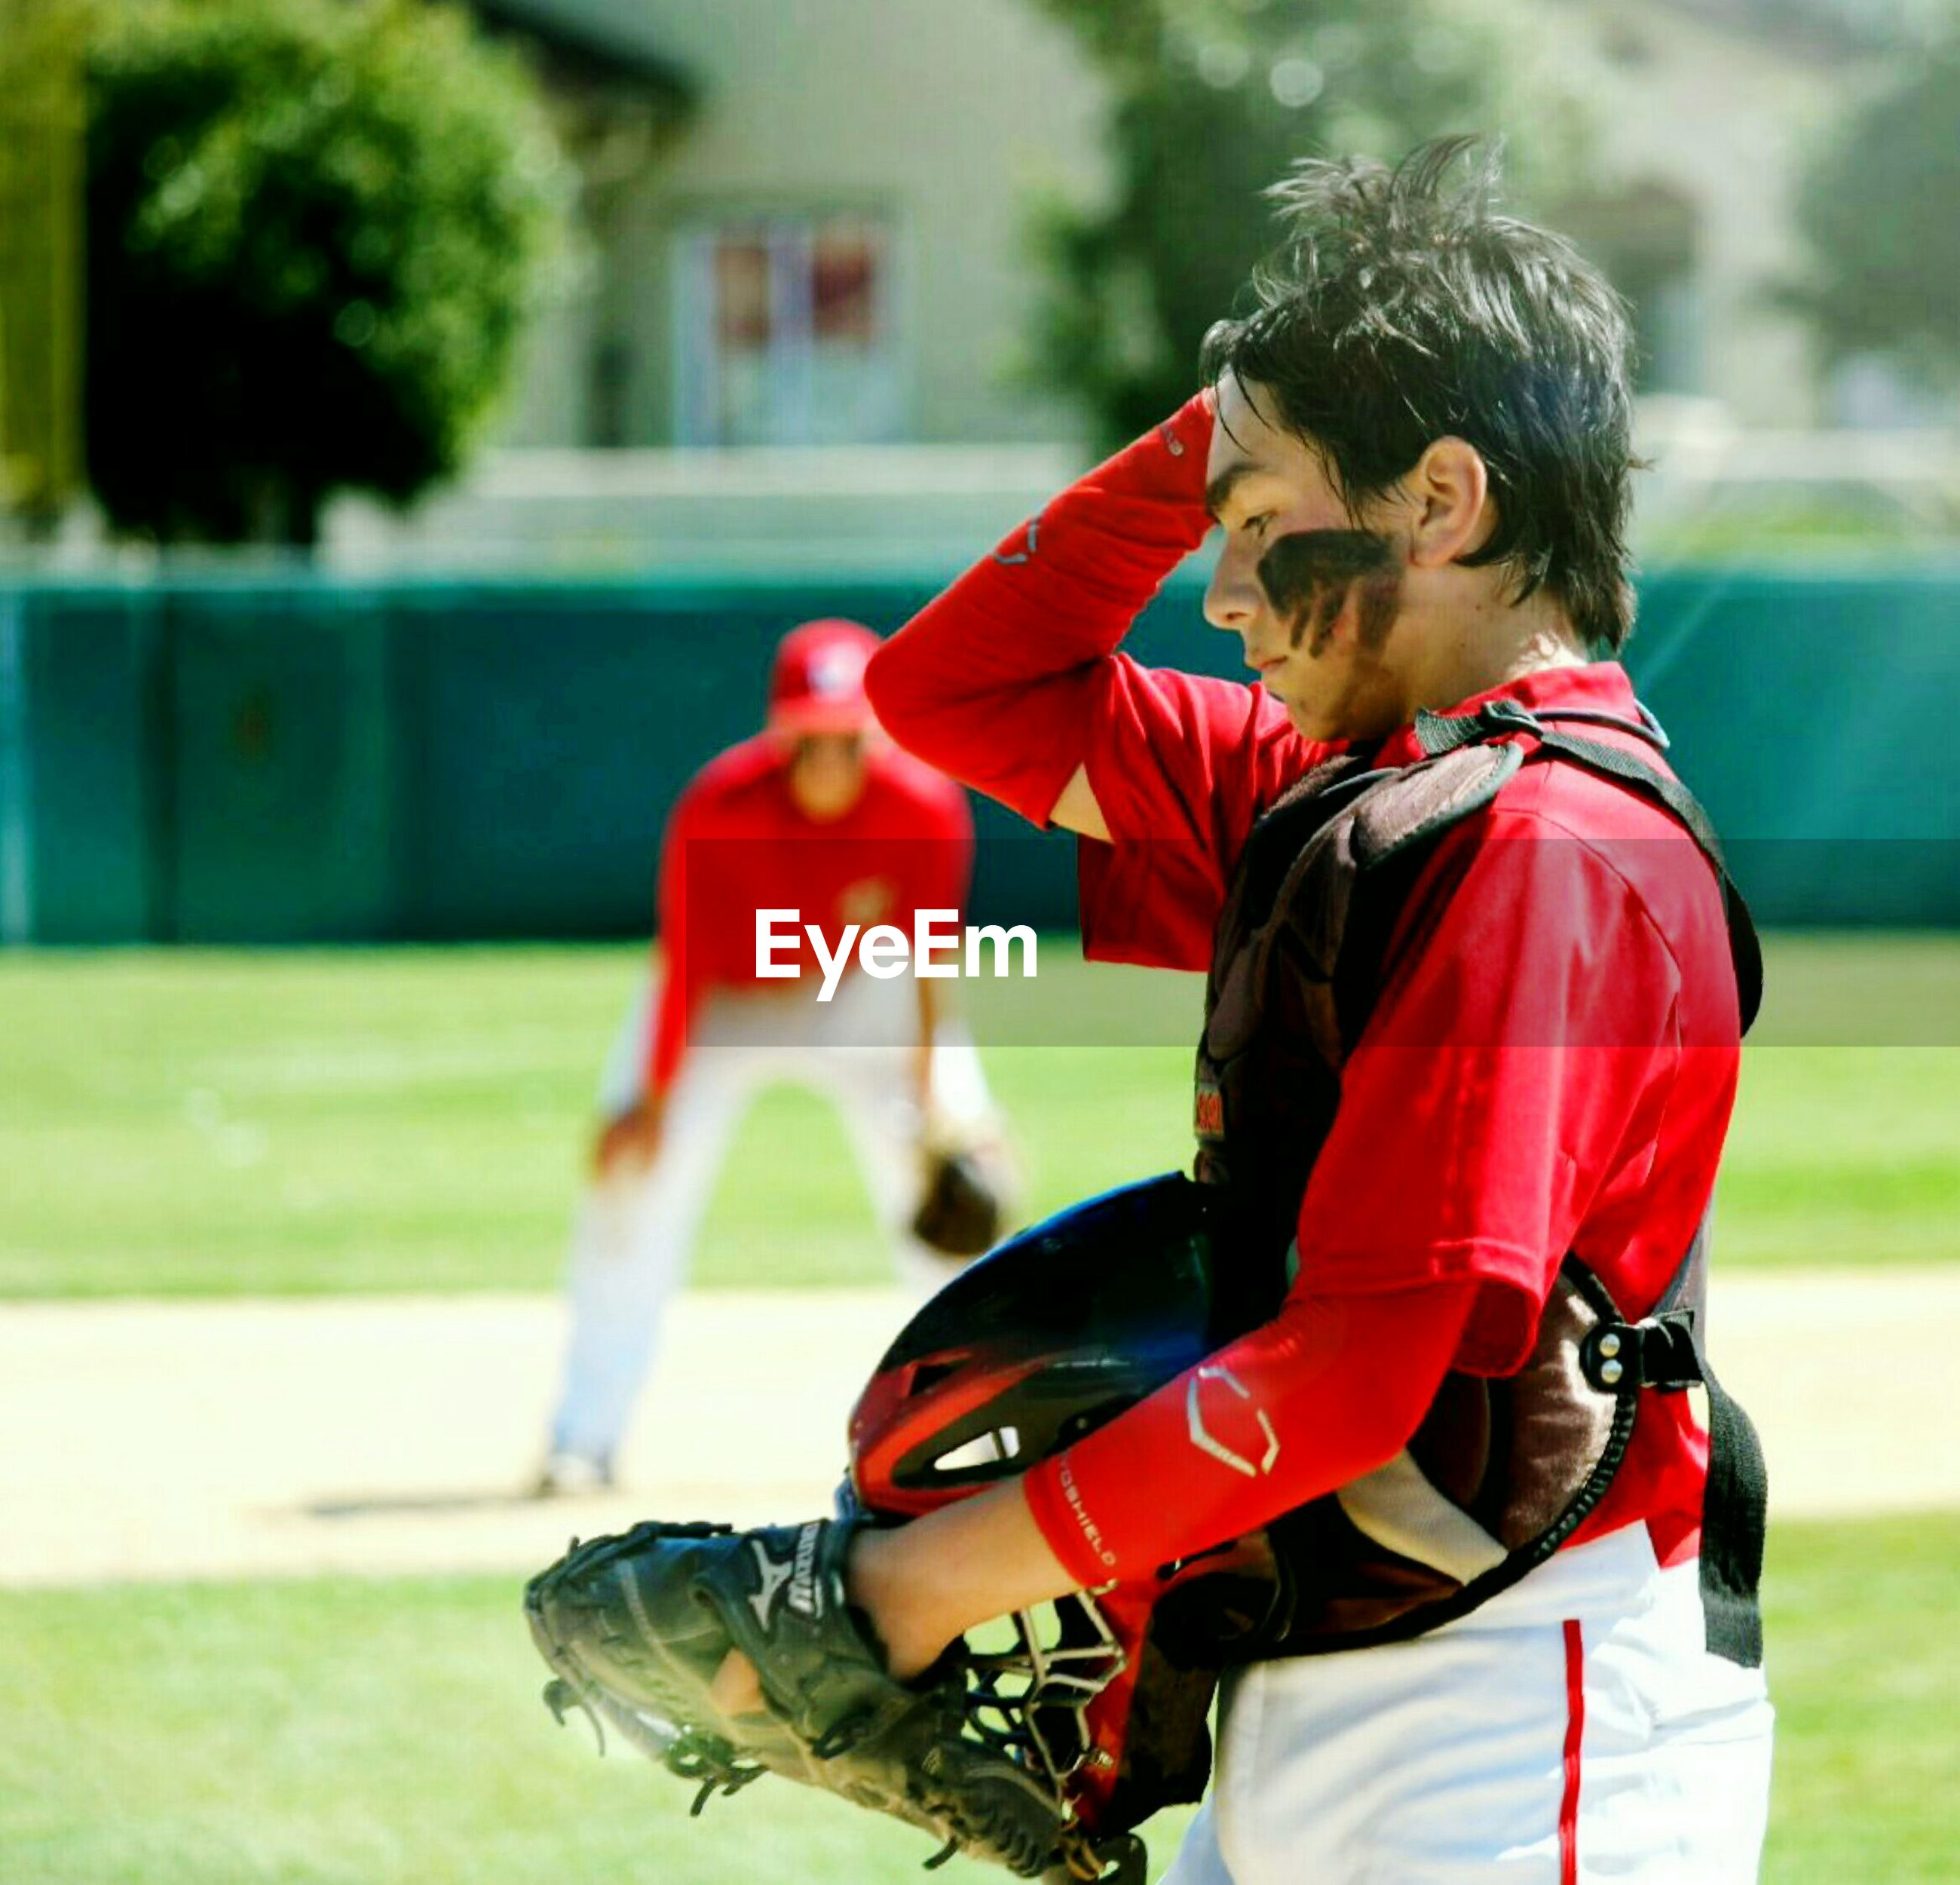 Side view of baseball player on field